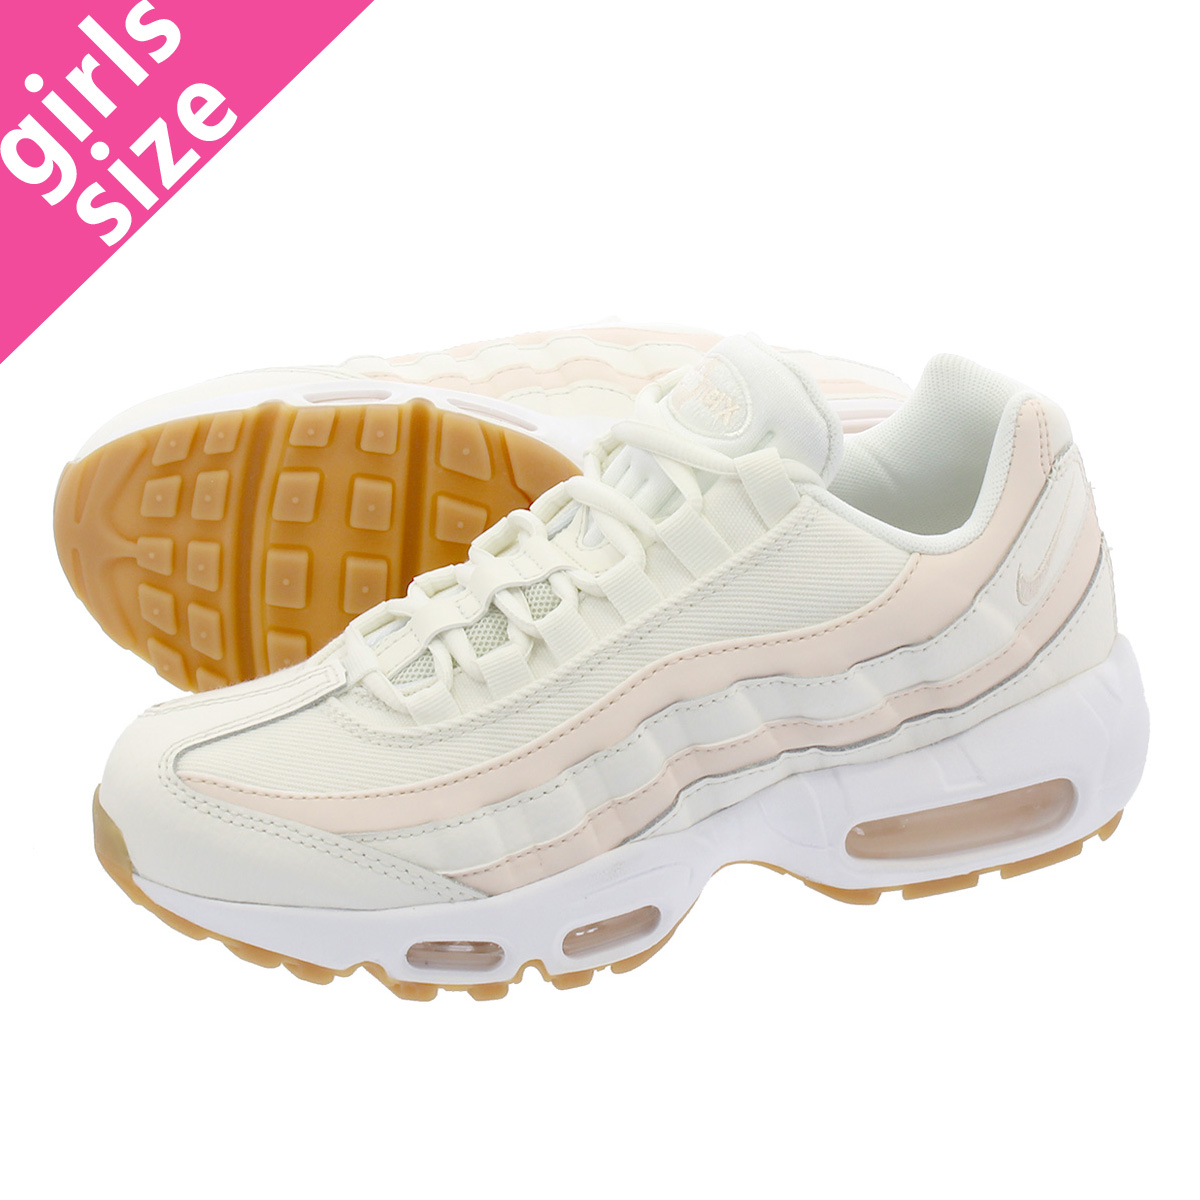 uk availability 47b99 d9fd7 NIKE WMNS AIR MAX 95 Nike women Air Max 95 SAIL GUAVA ICE GUM LIGHT  BROWN WHITE 307,960-111